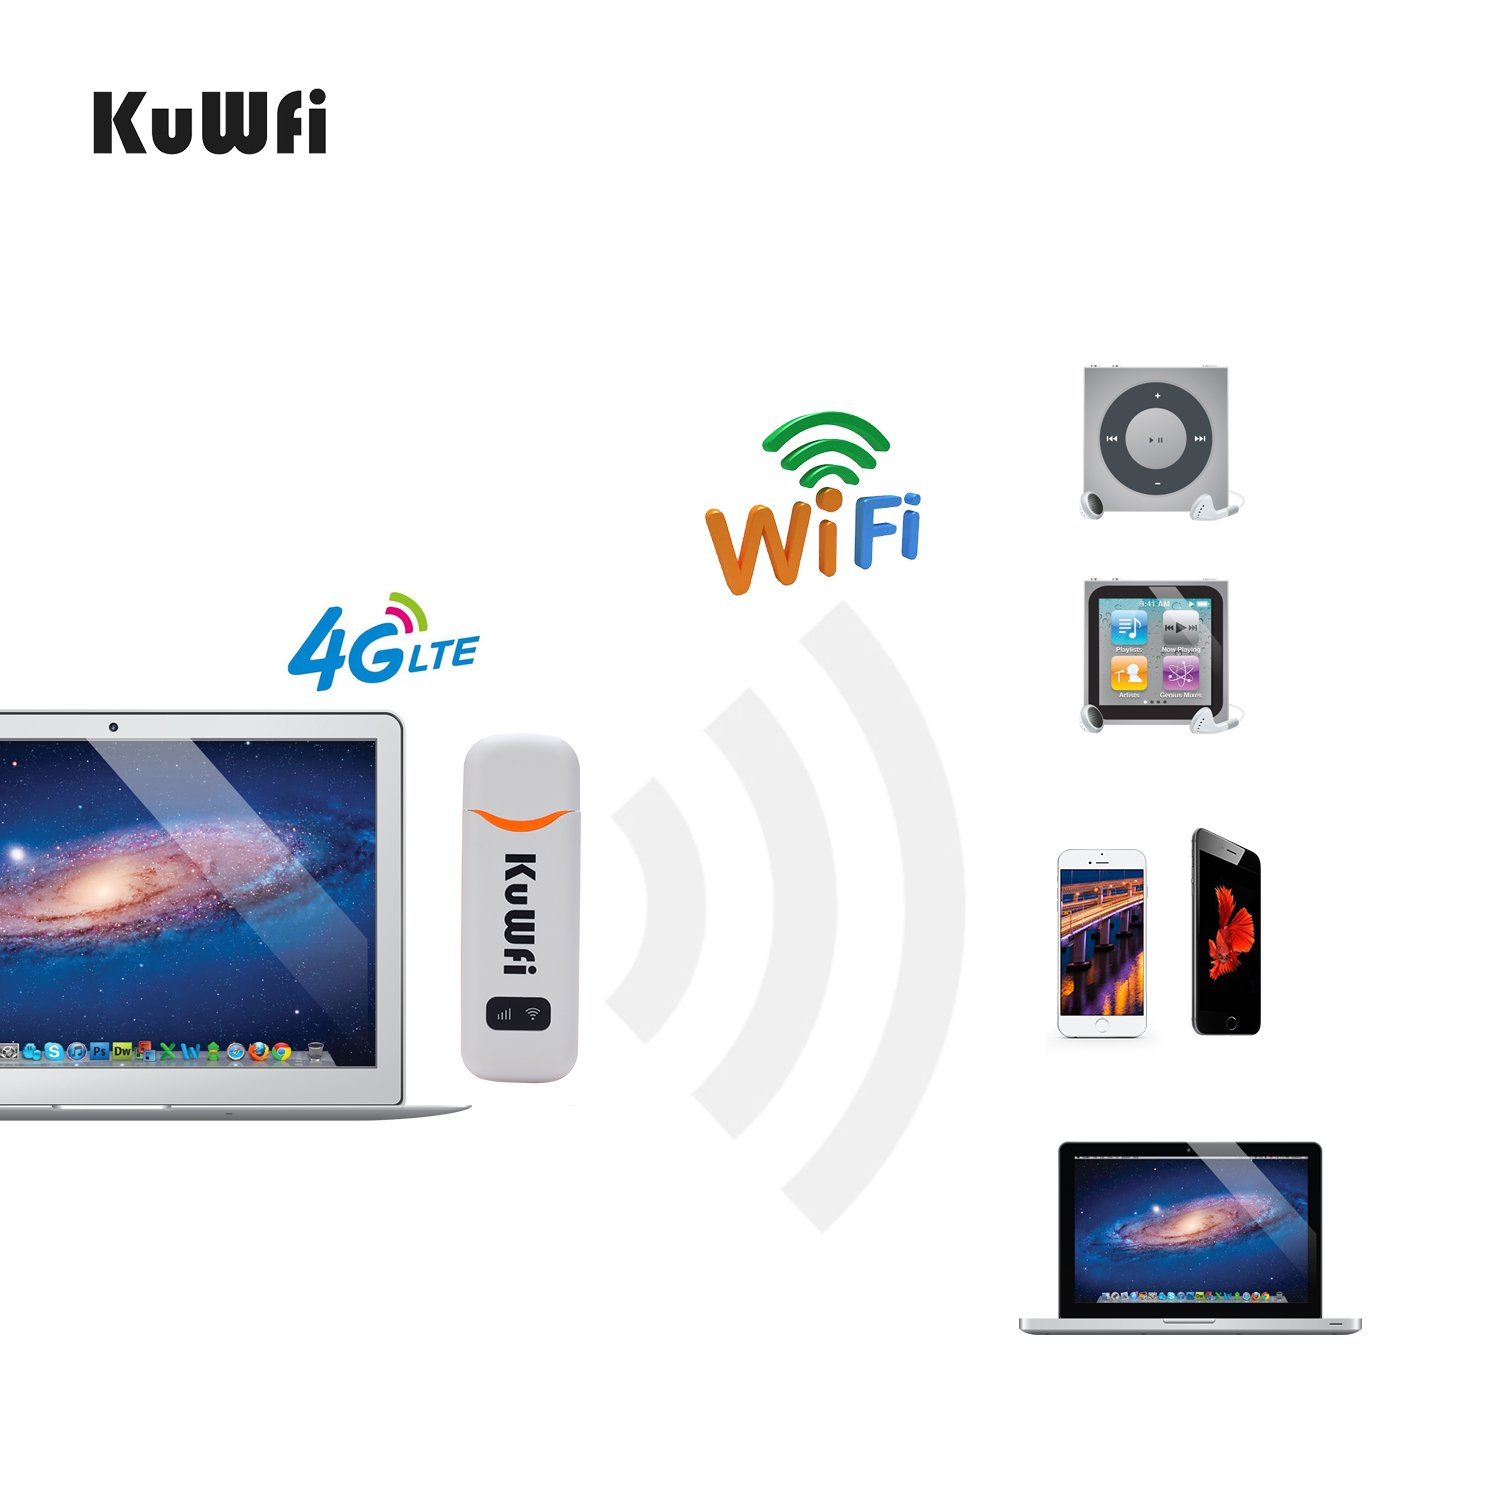 KuWFi 4G Car WiFi Modem LTE USB Dongle Unlocked Pocket Mobile Network Hotspot for Travel with SIM Card Slot Support B7 for Canada